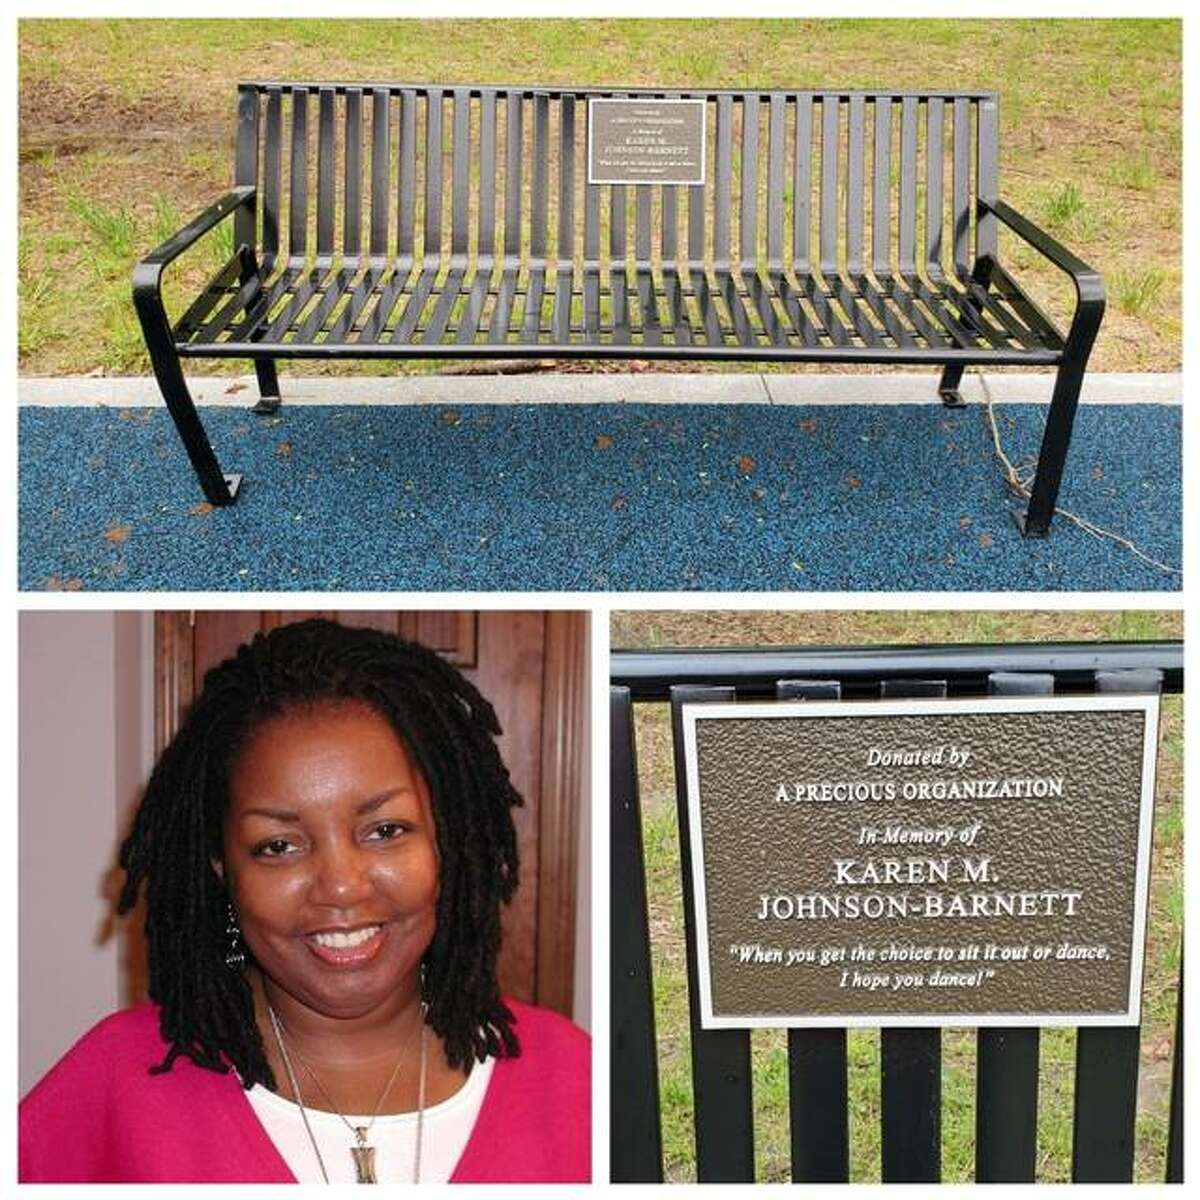 A bench at Rock Spring Park in Alton is dedicated to Karen M. Johnson-Barnett and who both died due to complications of sickle cell disease. This year's walk is planned Sept. 18.